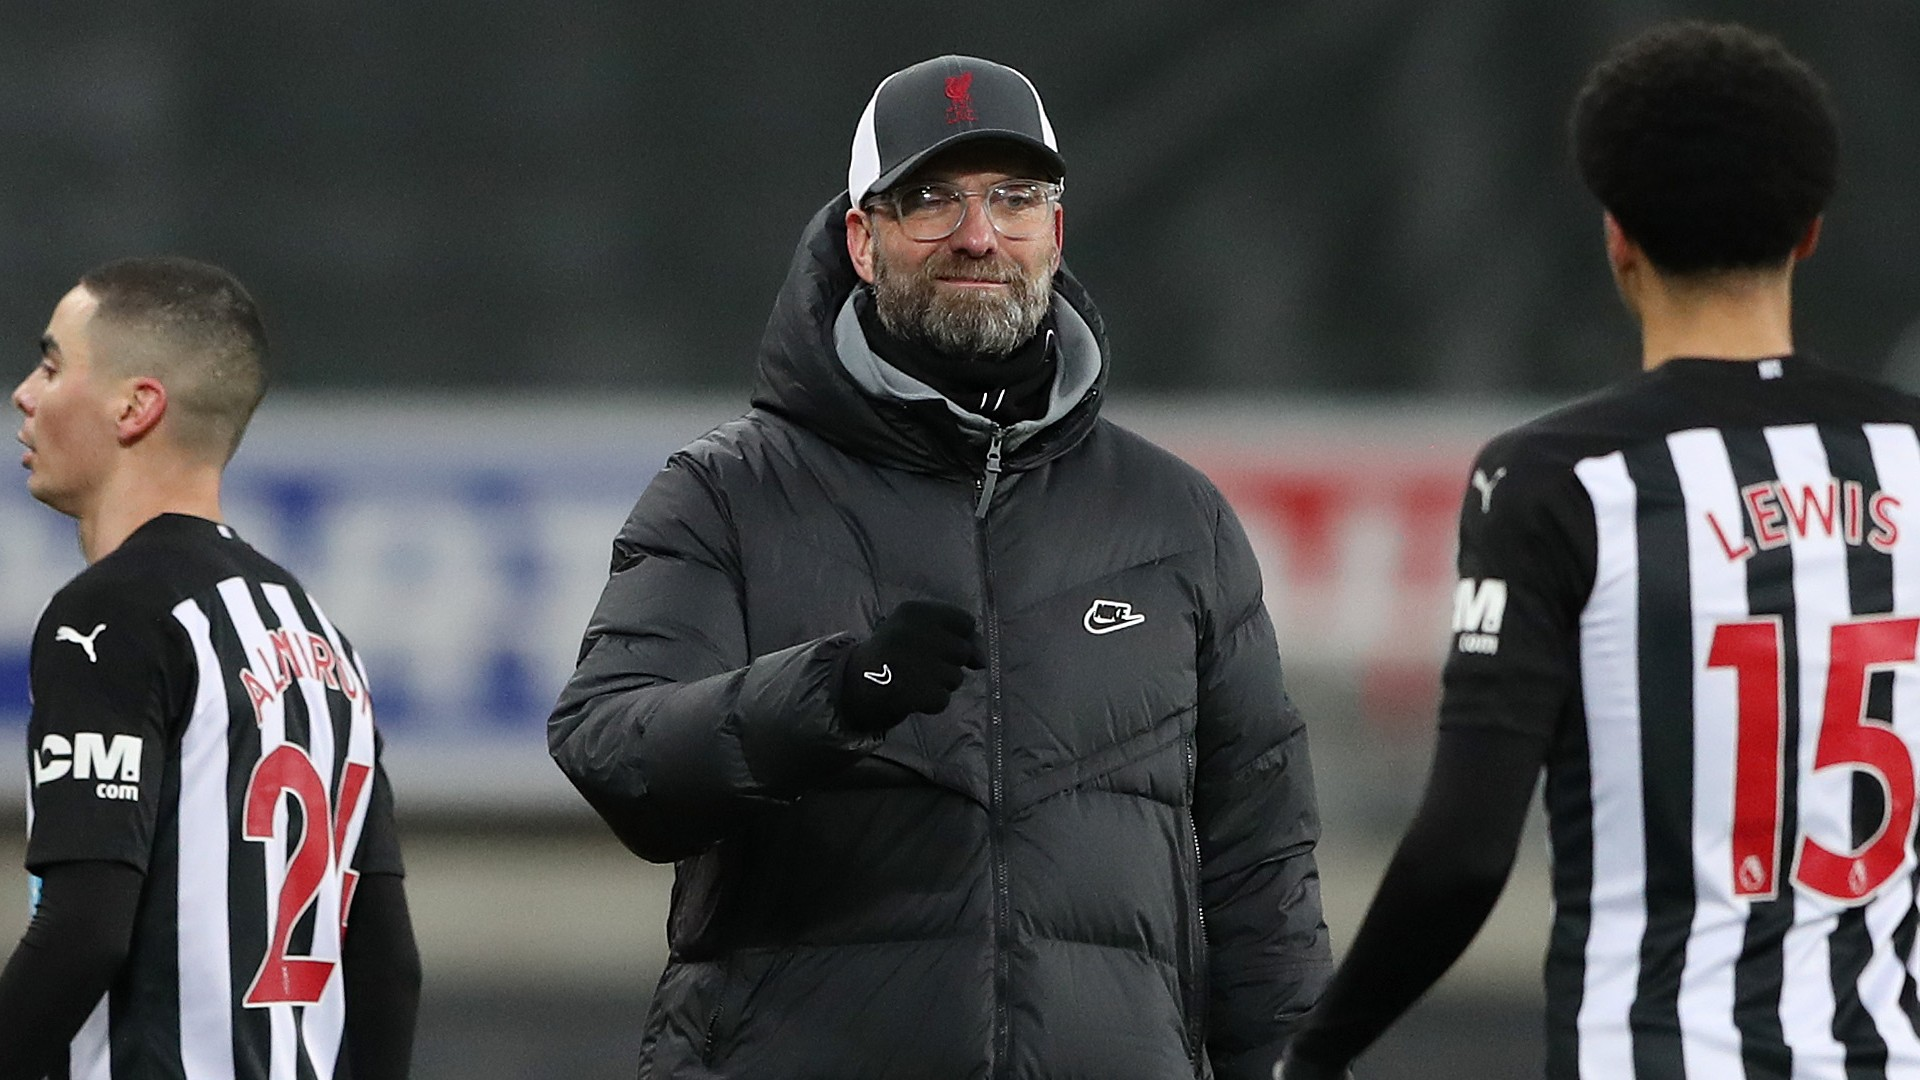 Klopp not expecting Liverpool signings in January